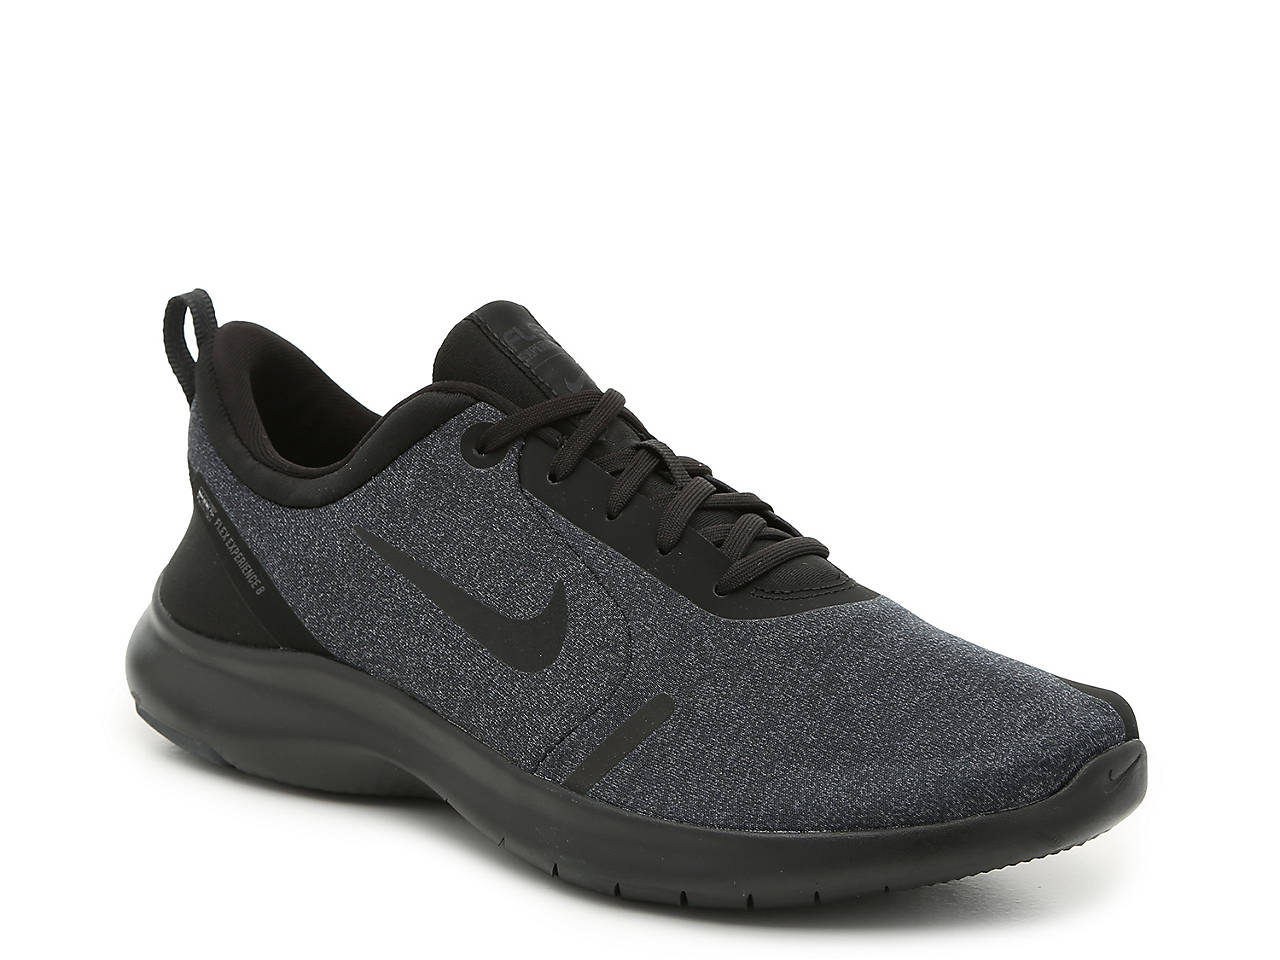 0666eef1990 Nike Flex Experience RN 8 Lightweight Running Shoe - Men s Men s ...